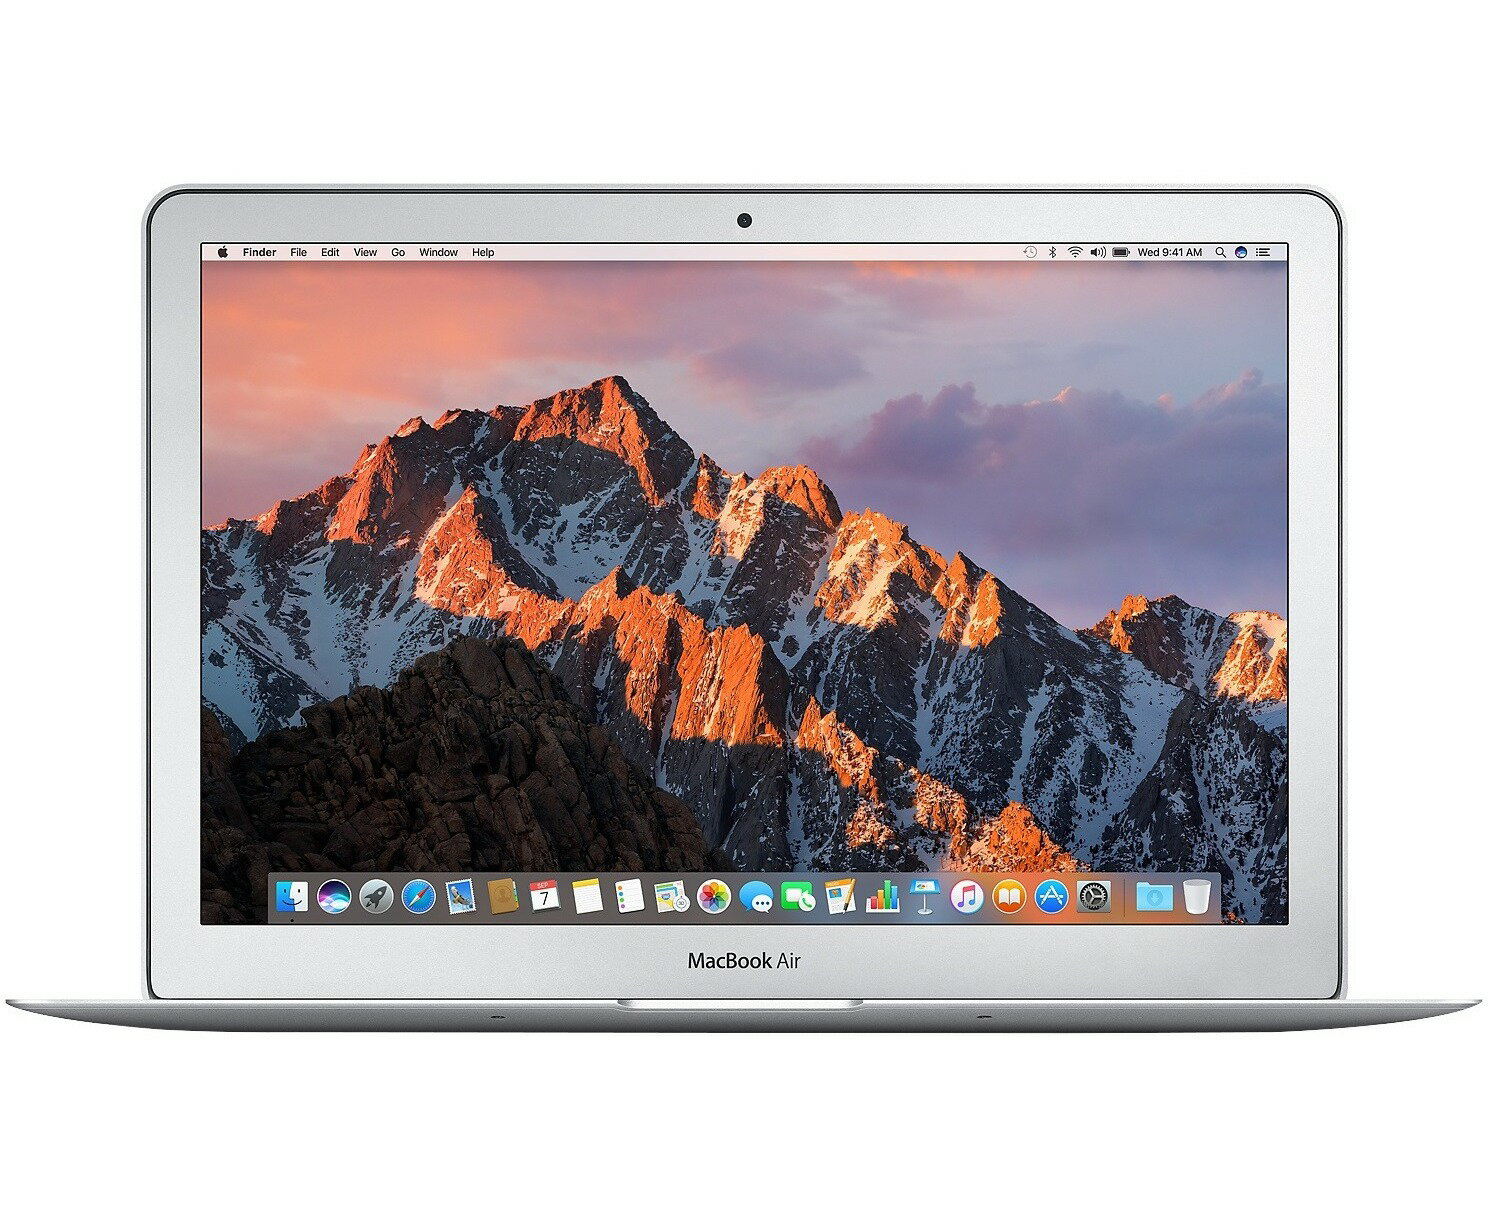 Apple MacBook Air A1465 MD711LL/B (2014) - Intel Core i5-4260U 4th Gen  1 40GHz, 4GB Ram, 128GB Flash Storage, 11 6